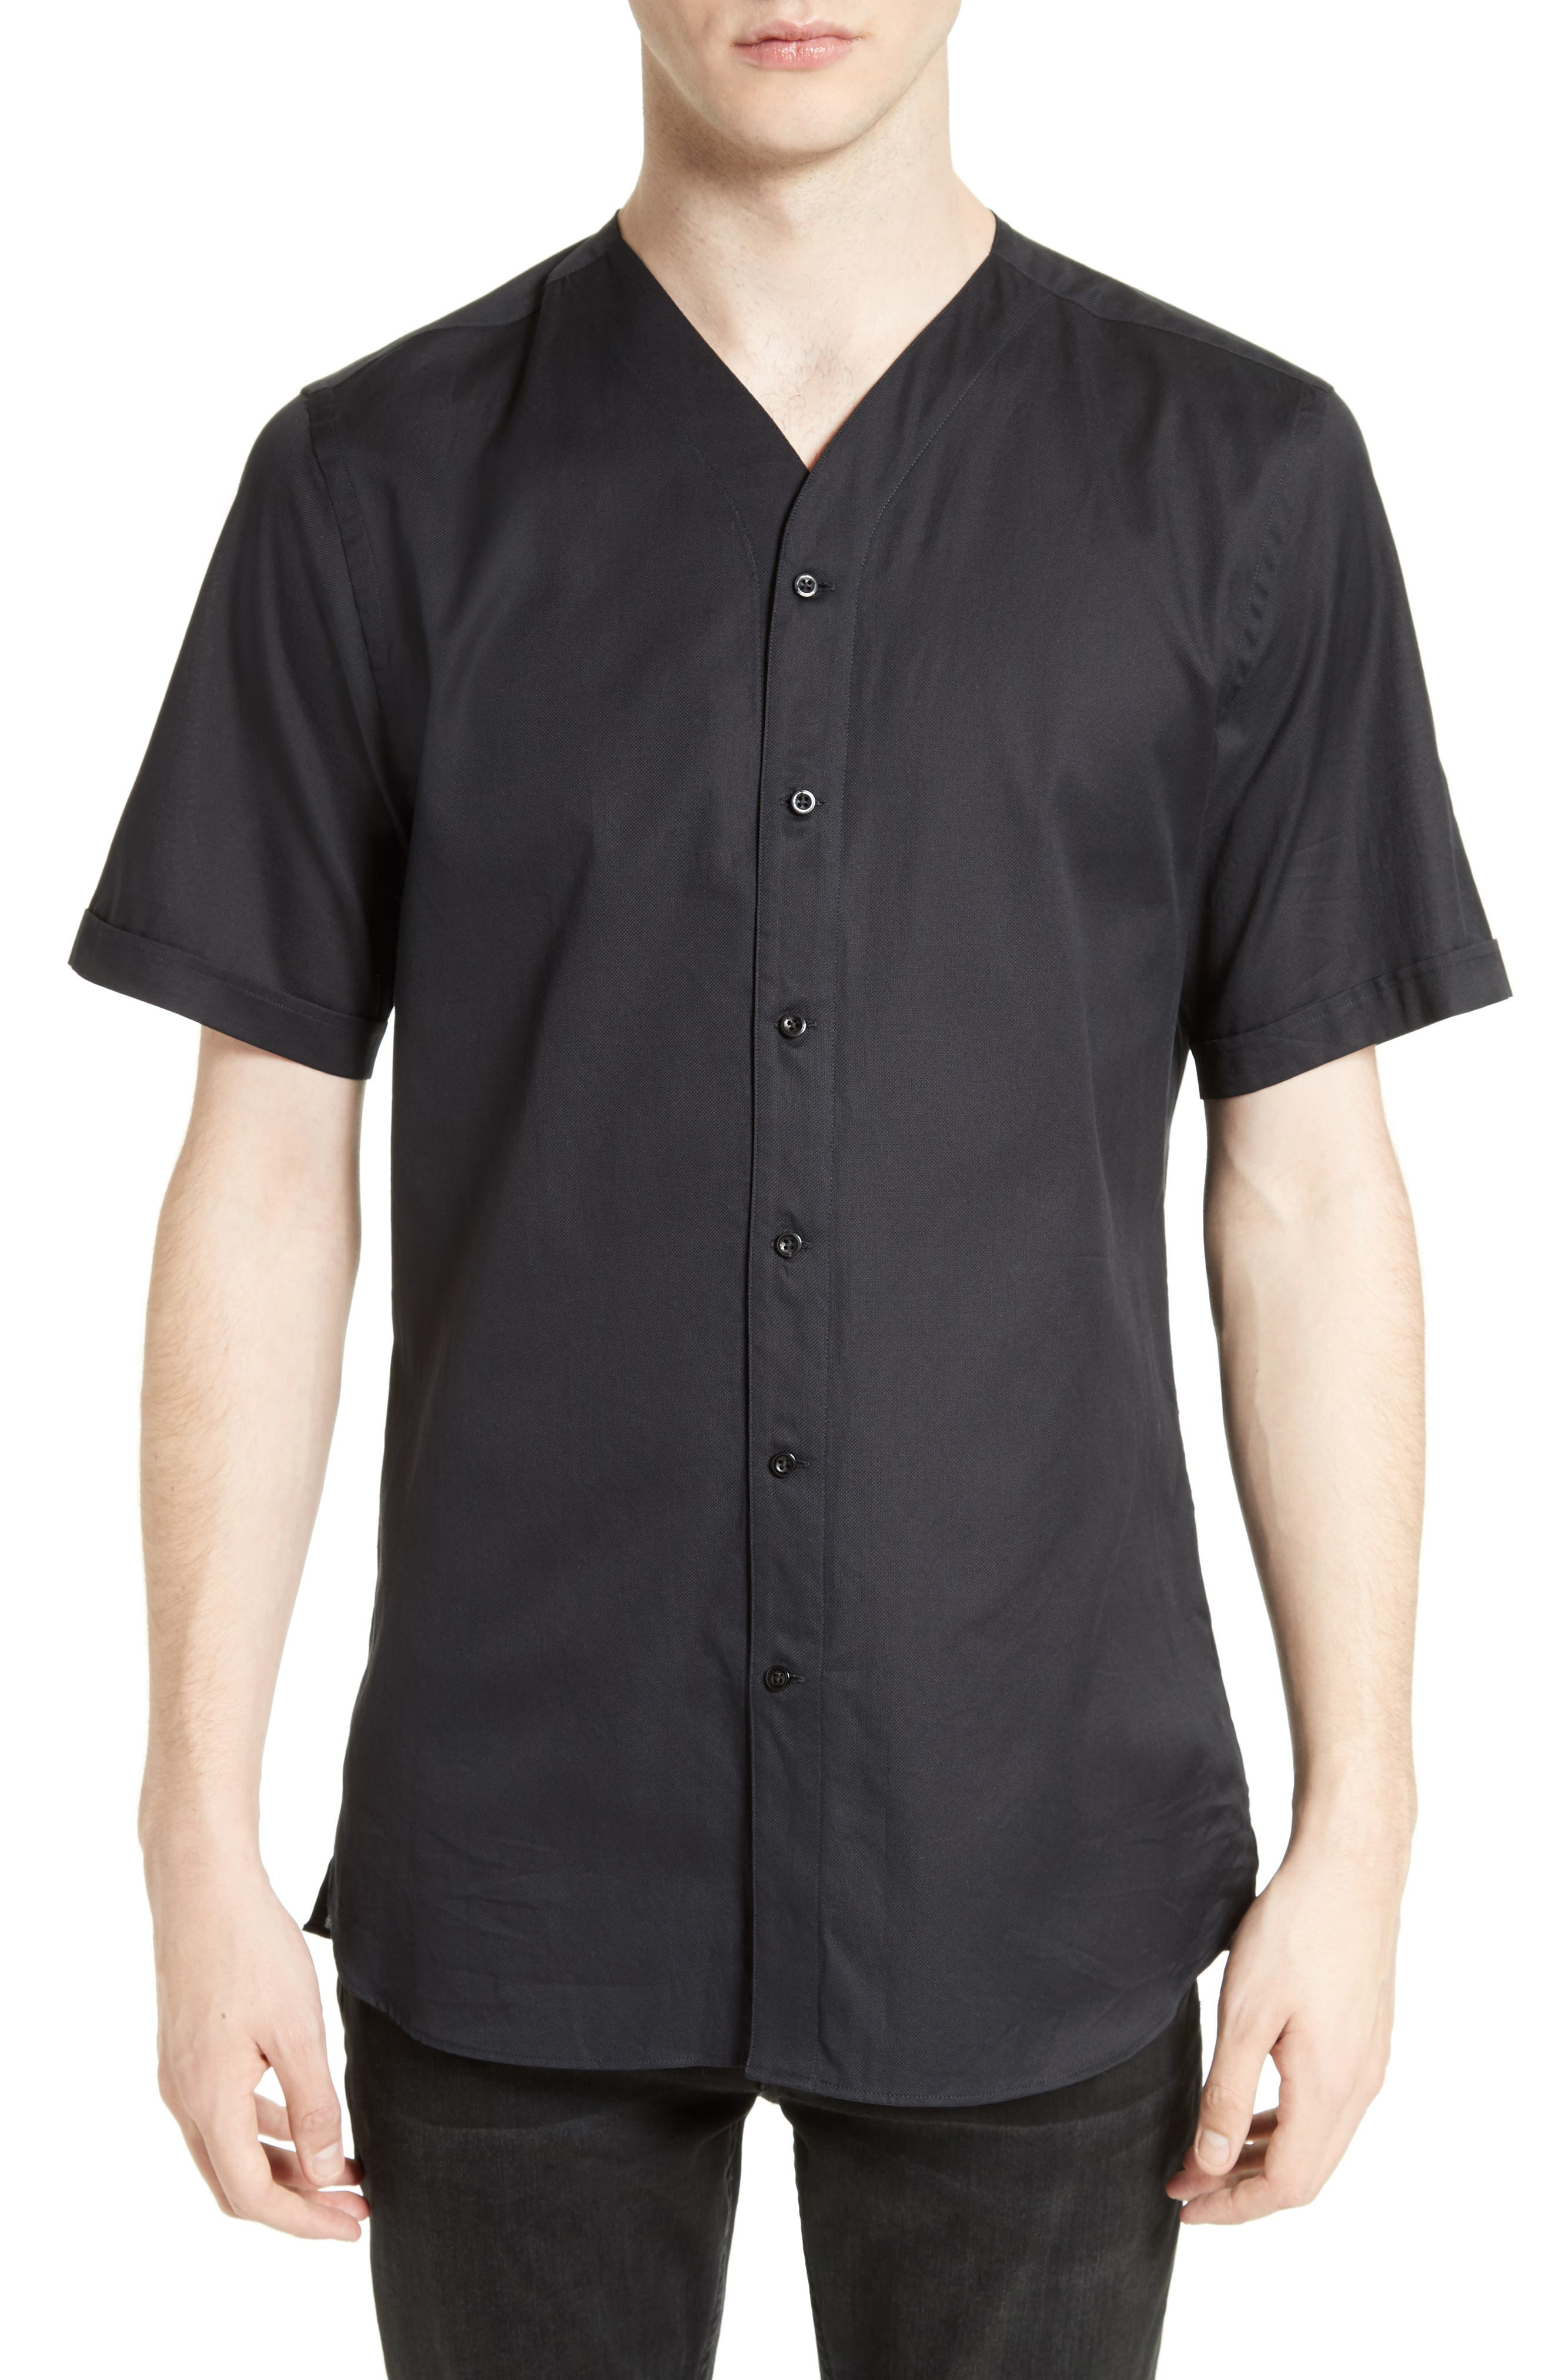 Main Image - The Kooples Classic Cotton Woven V-Neck Shirt